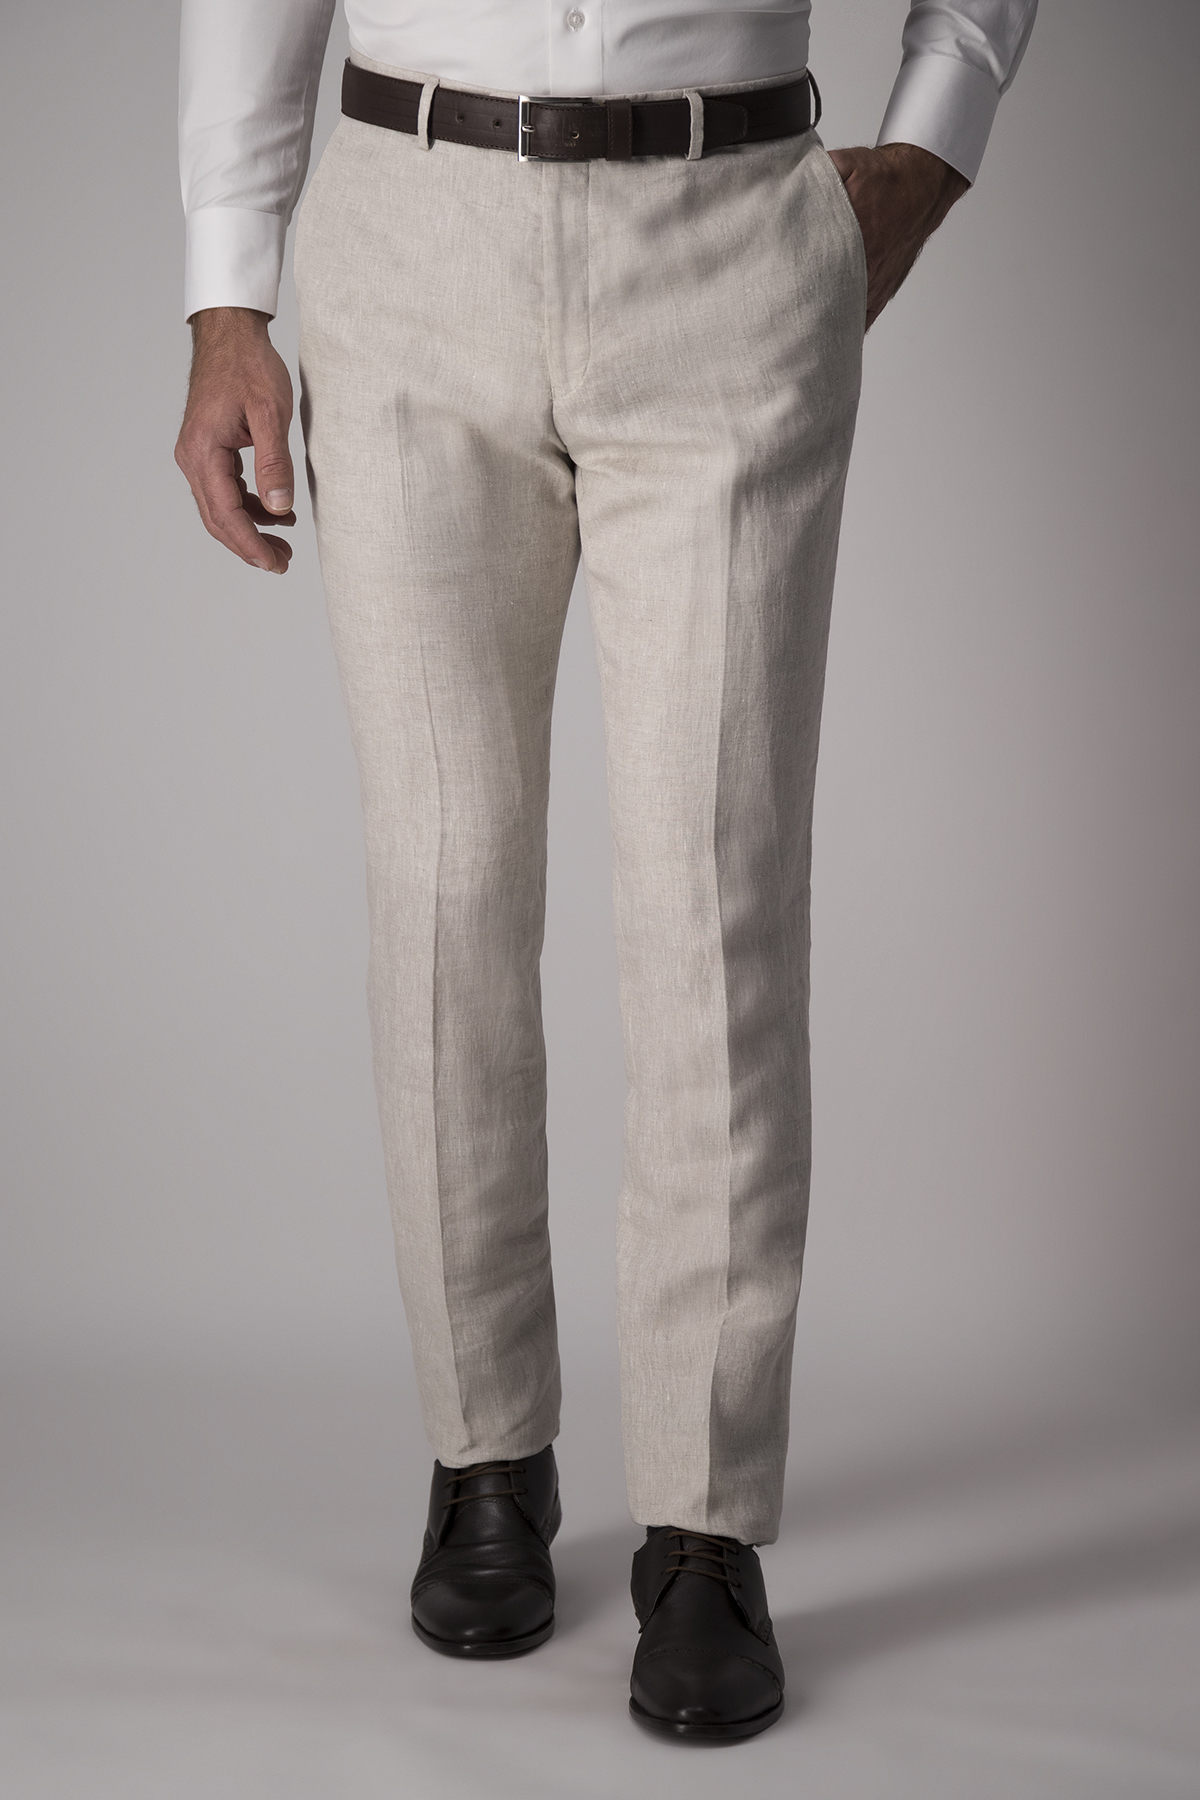 Pantalón Robert´s, slim fit, 100% lino, color beige.